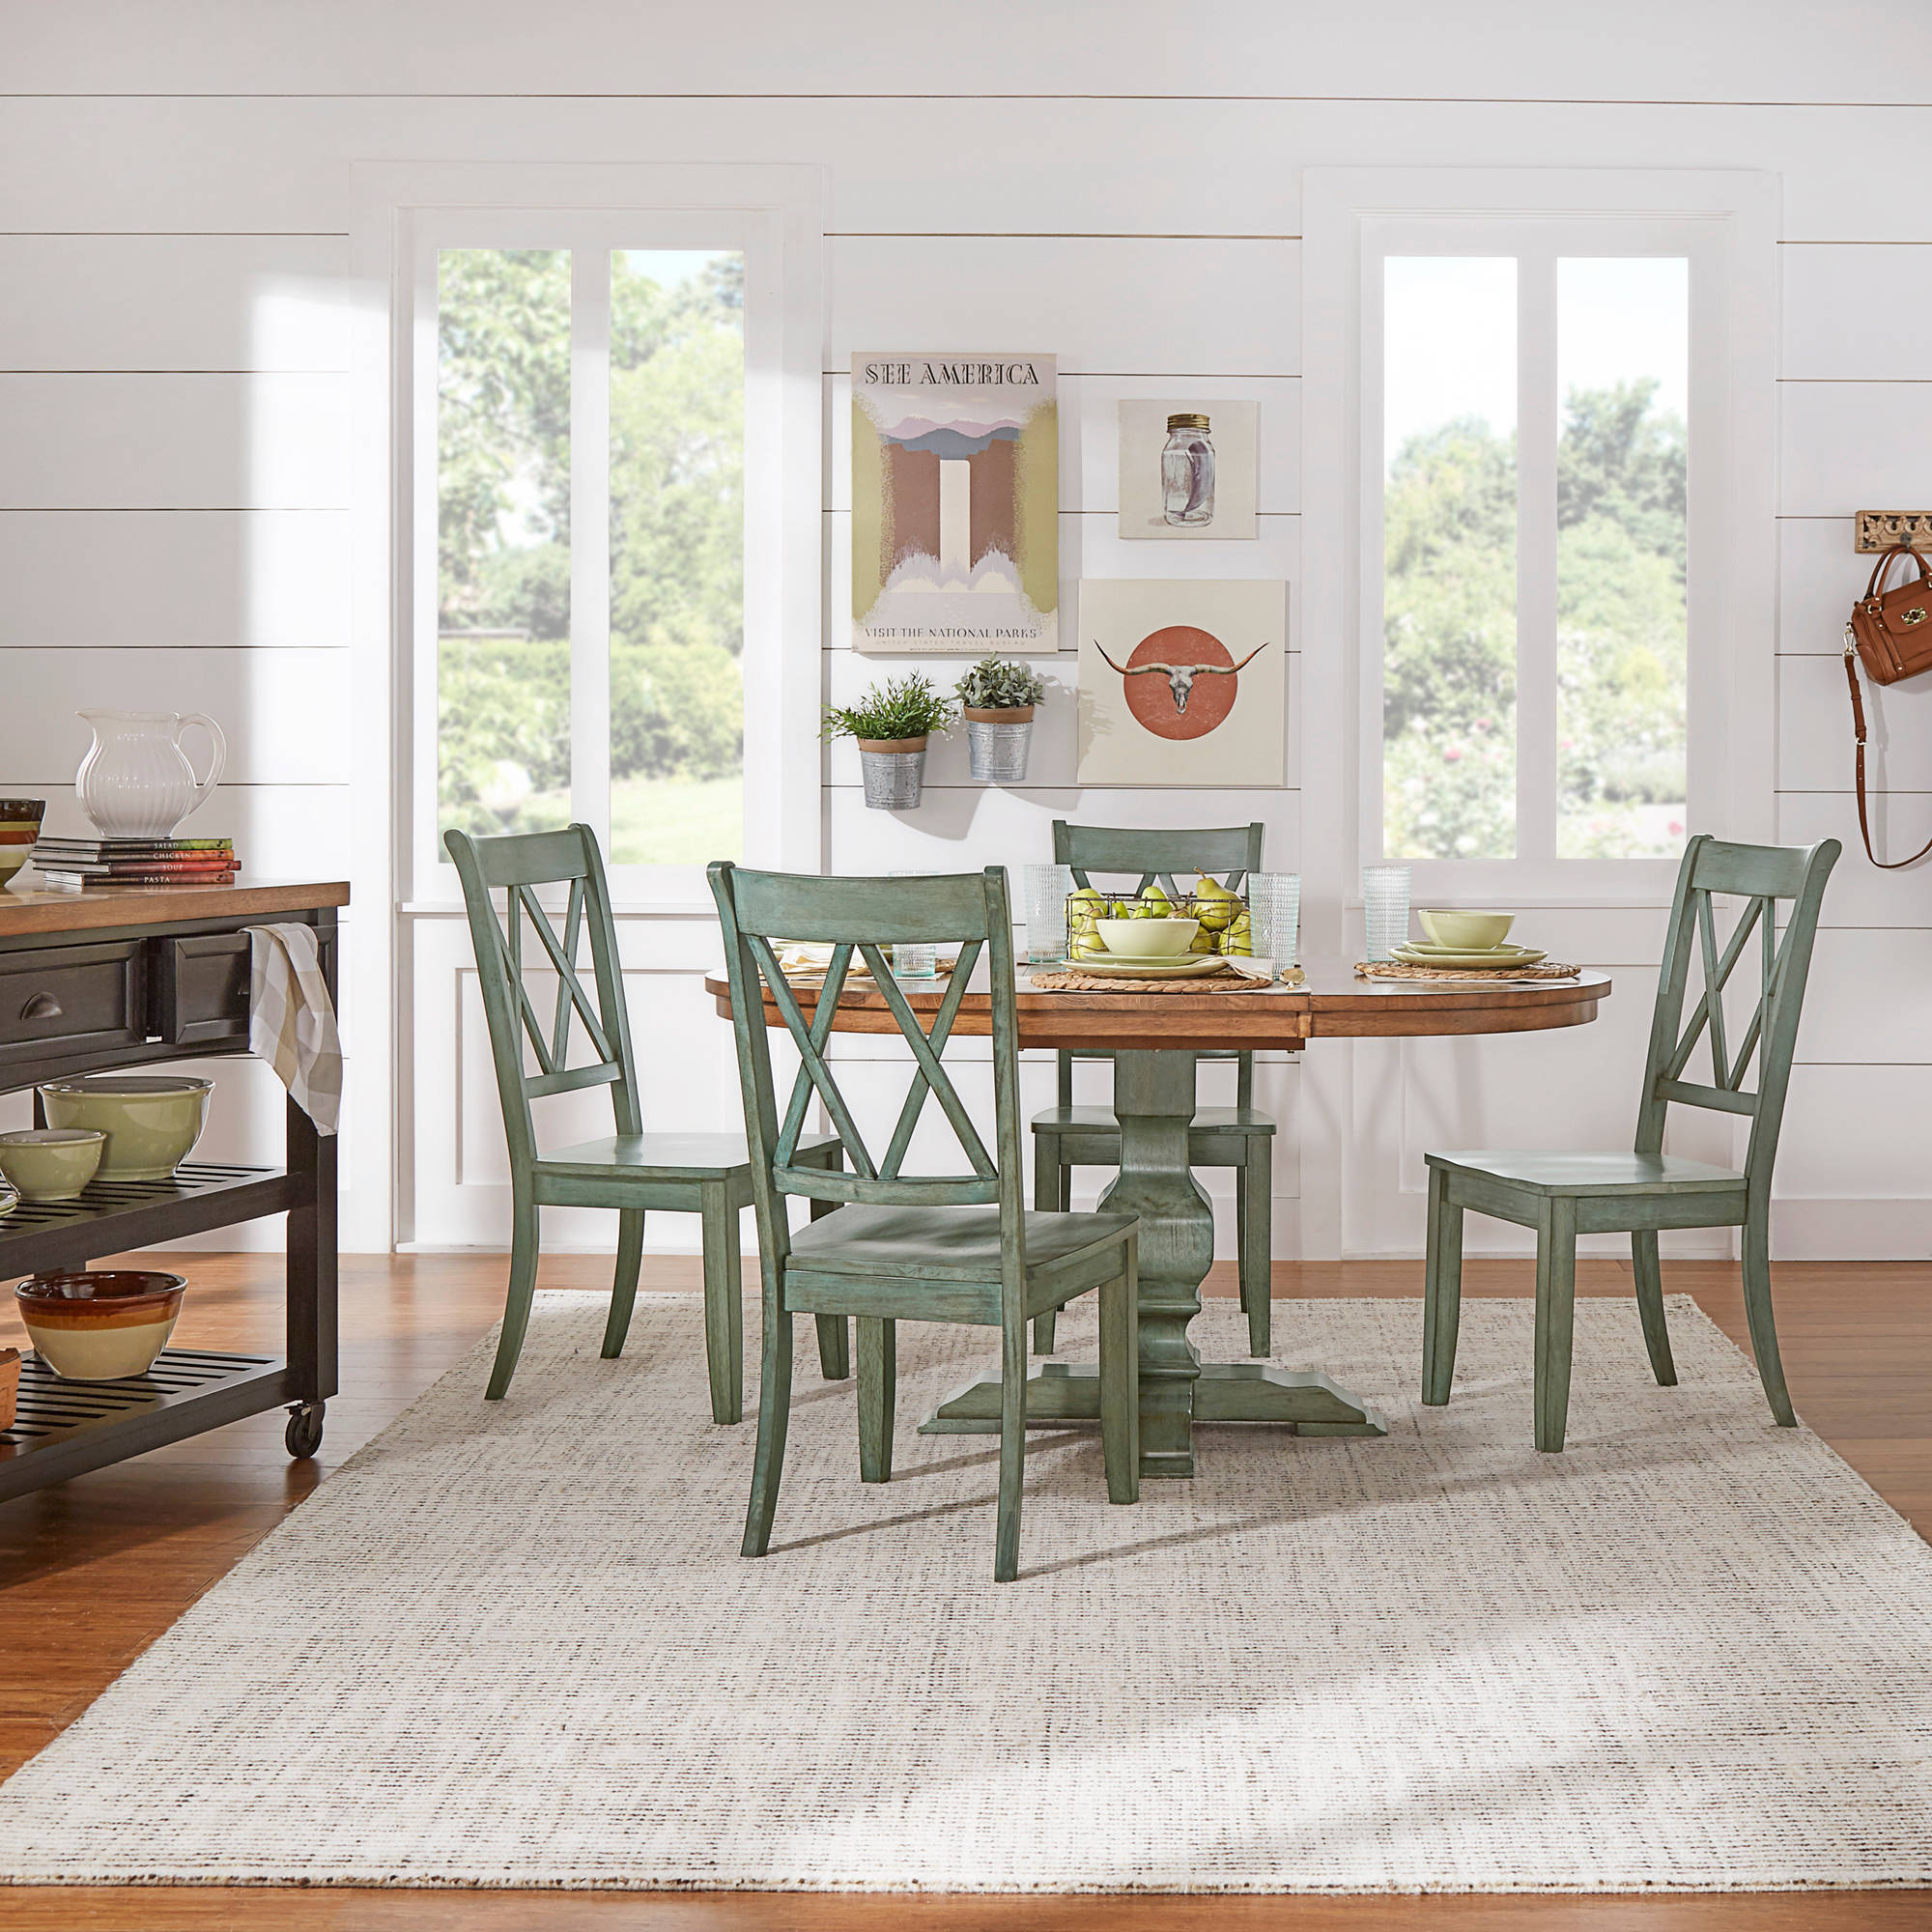 """Weston Home 5-Piece 60"""" Oval Dining Set, with Dark Sea Green Table and Dark Sea Green Cross Back Chairs"""